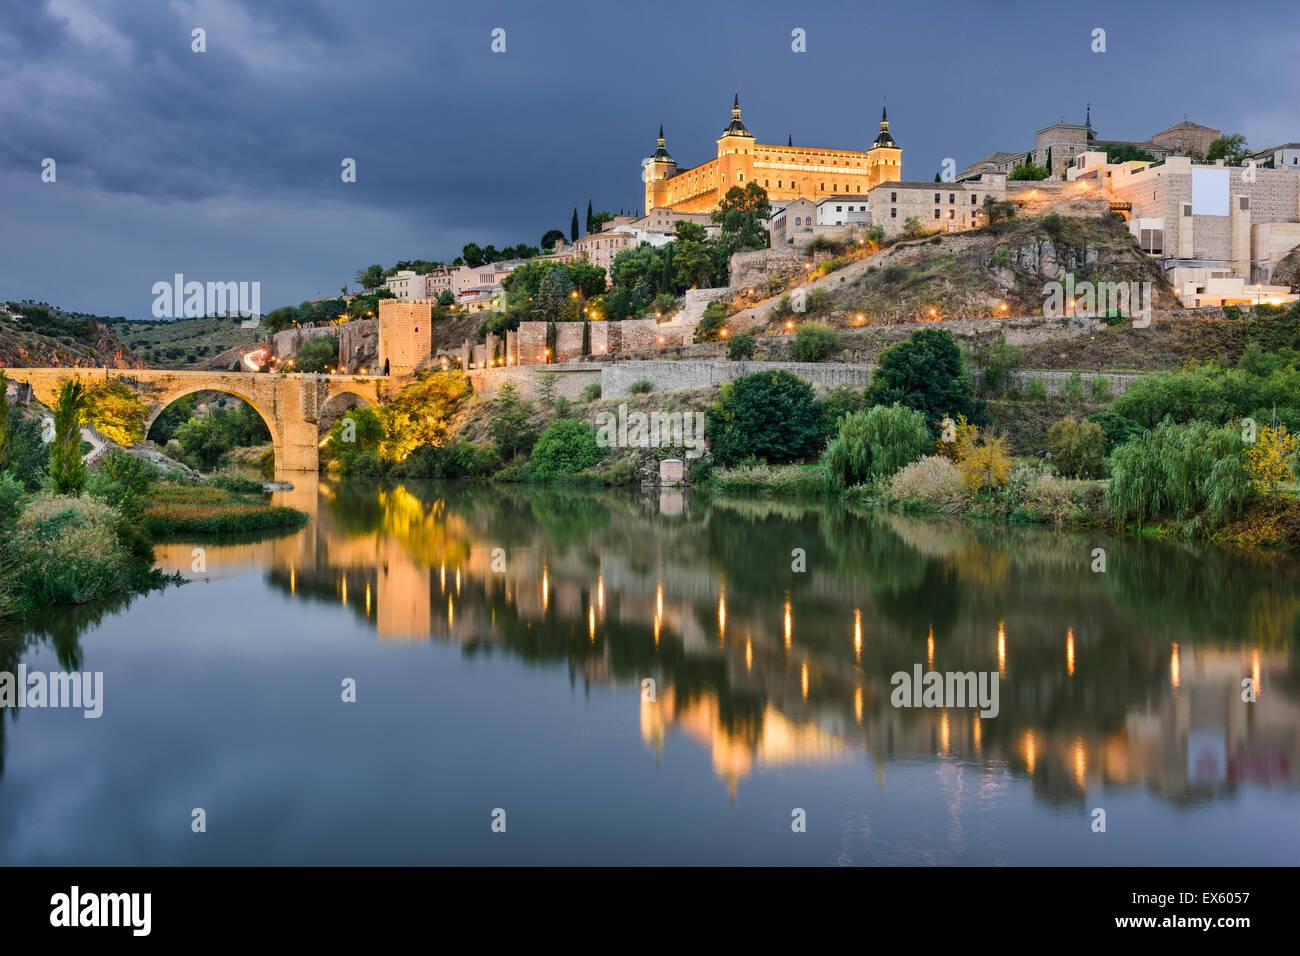 Toledo, Spanien am Fluss Tejo. Stockbild